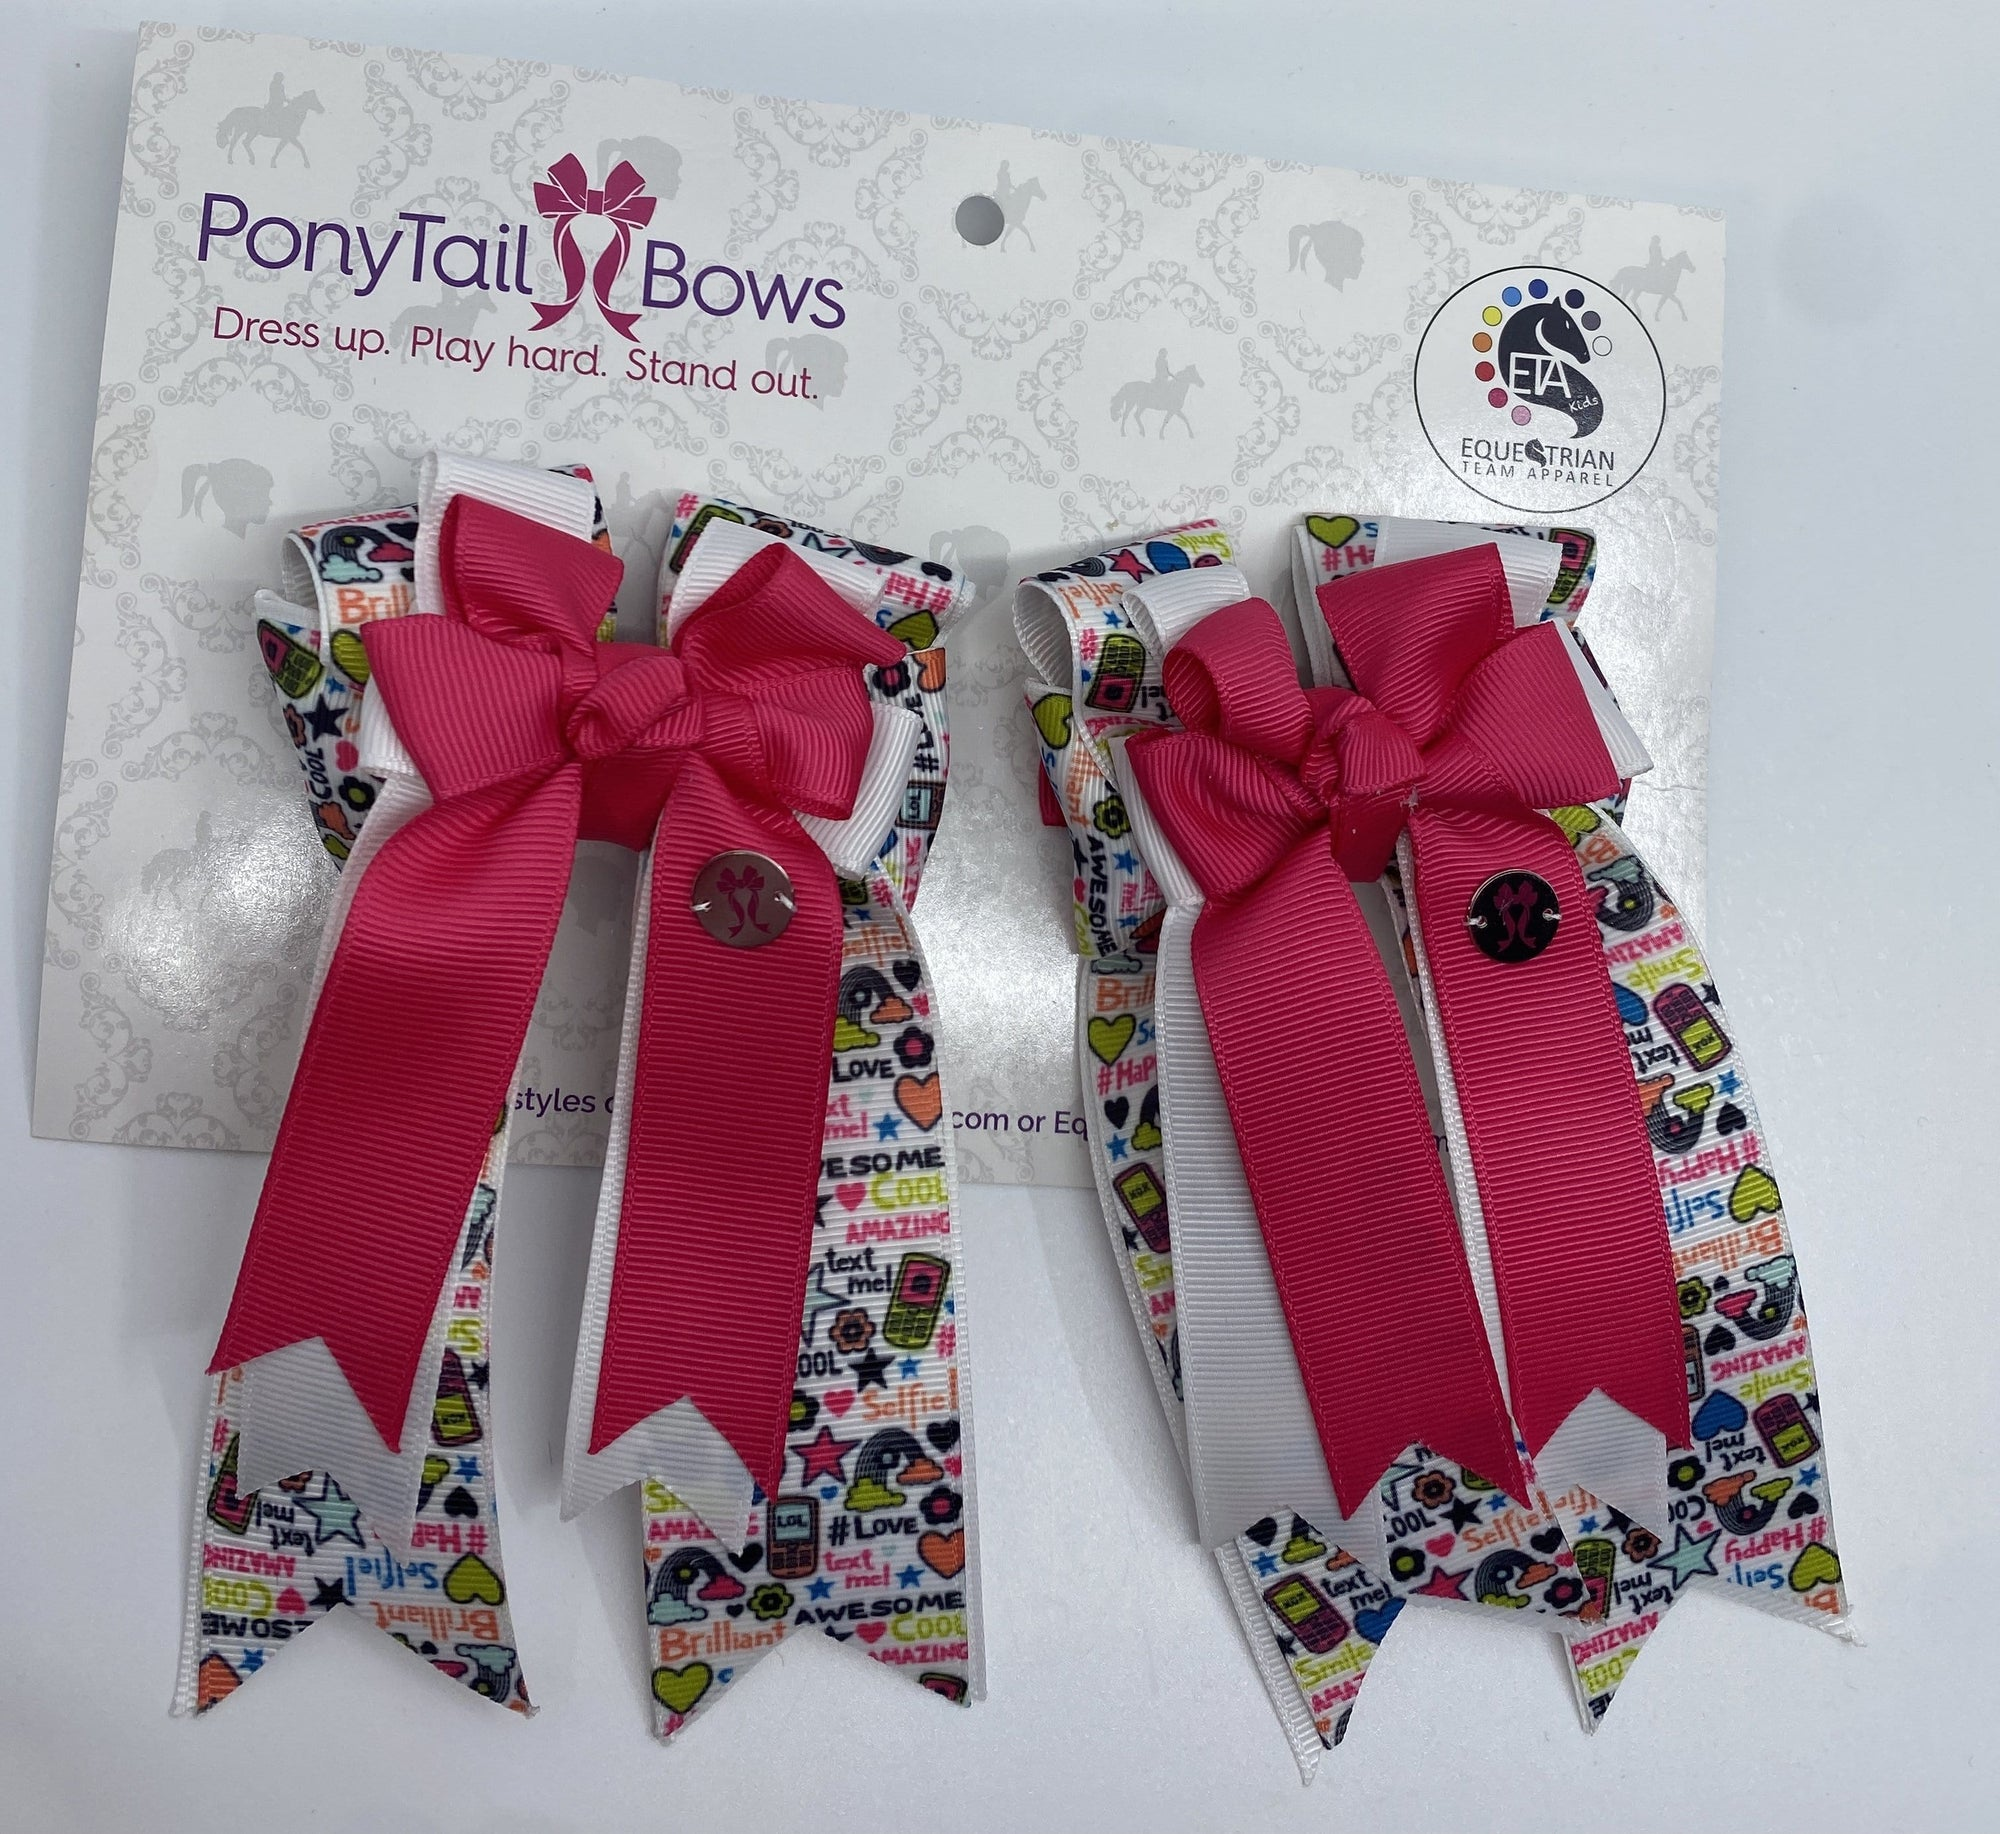 "PonyTail Bows 3"" Tails All The Things Pink PonyTail Bows equestrian team apparel online tack store mobile tack store custom farm apparel custom show stable clothing equestrian lifestyle horse show clothing riding clothes PonyTail Bows 